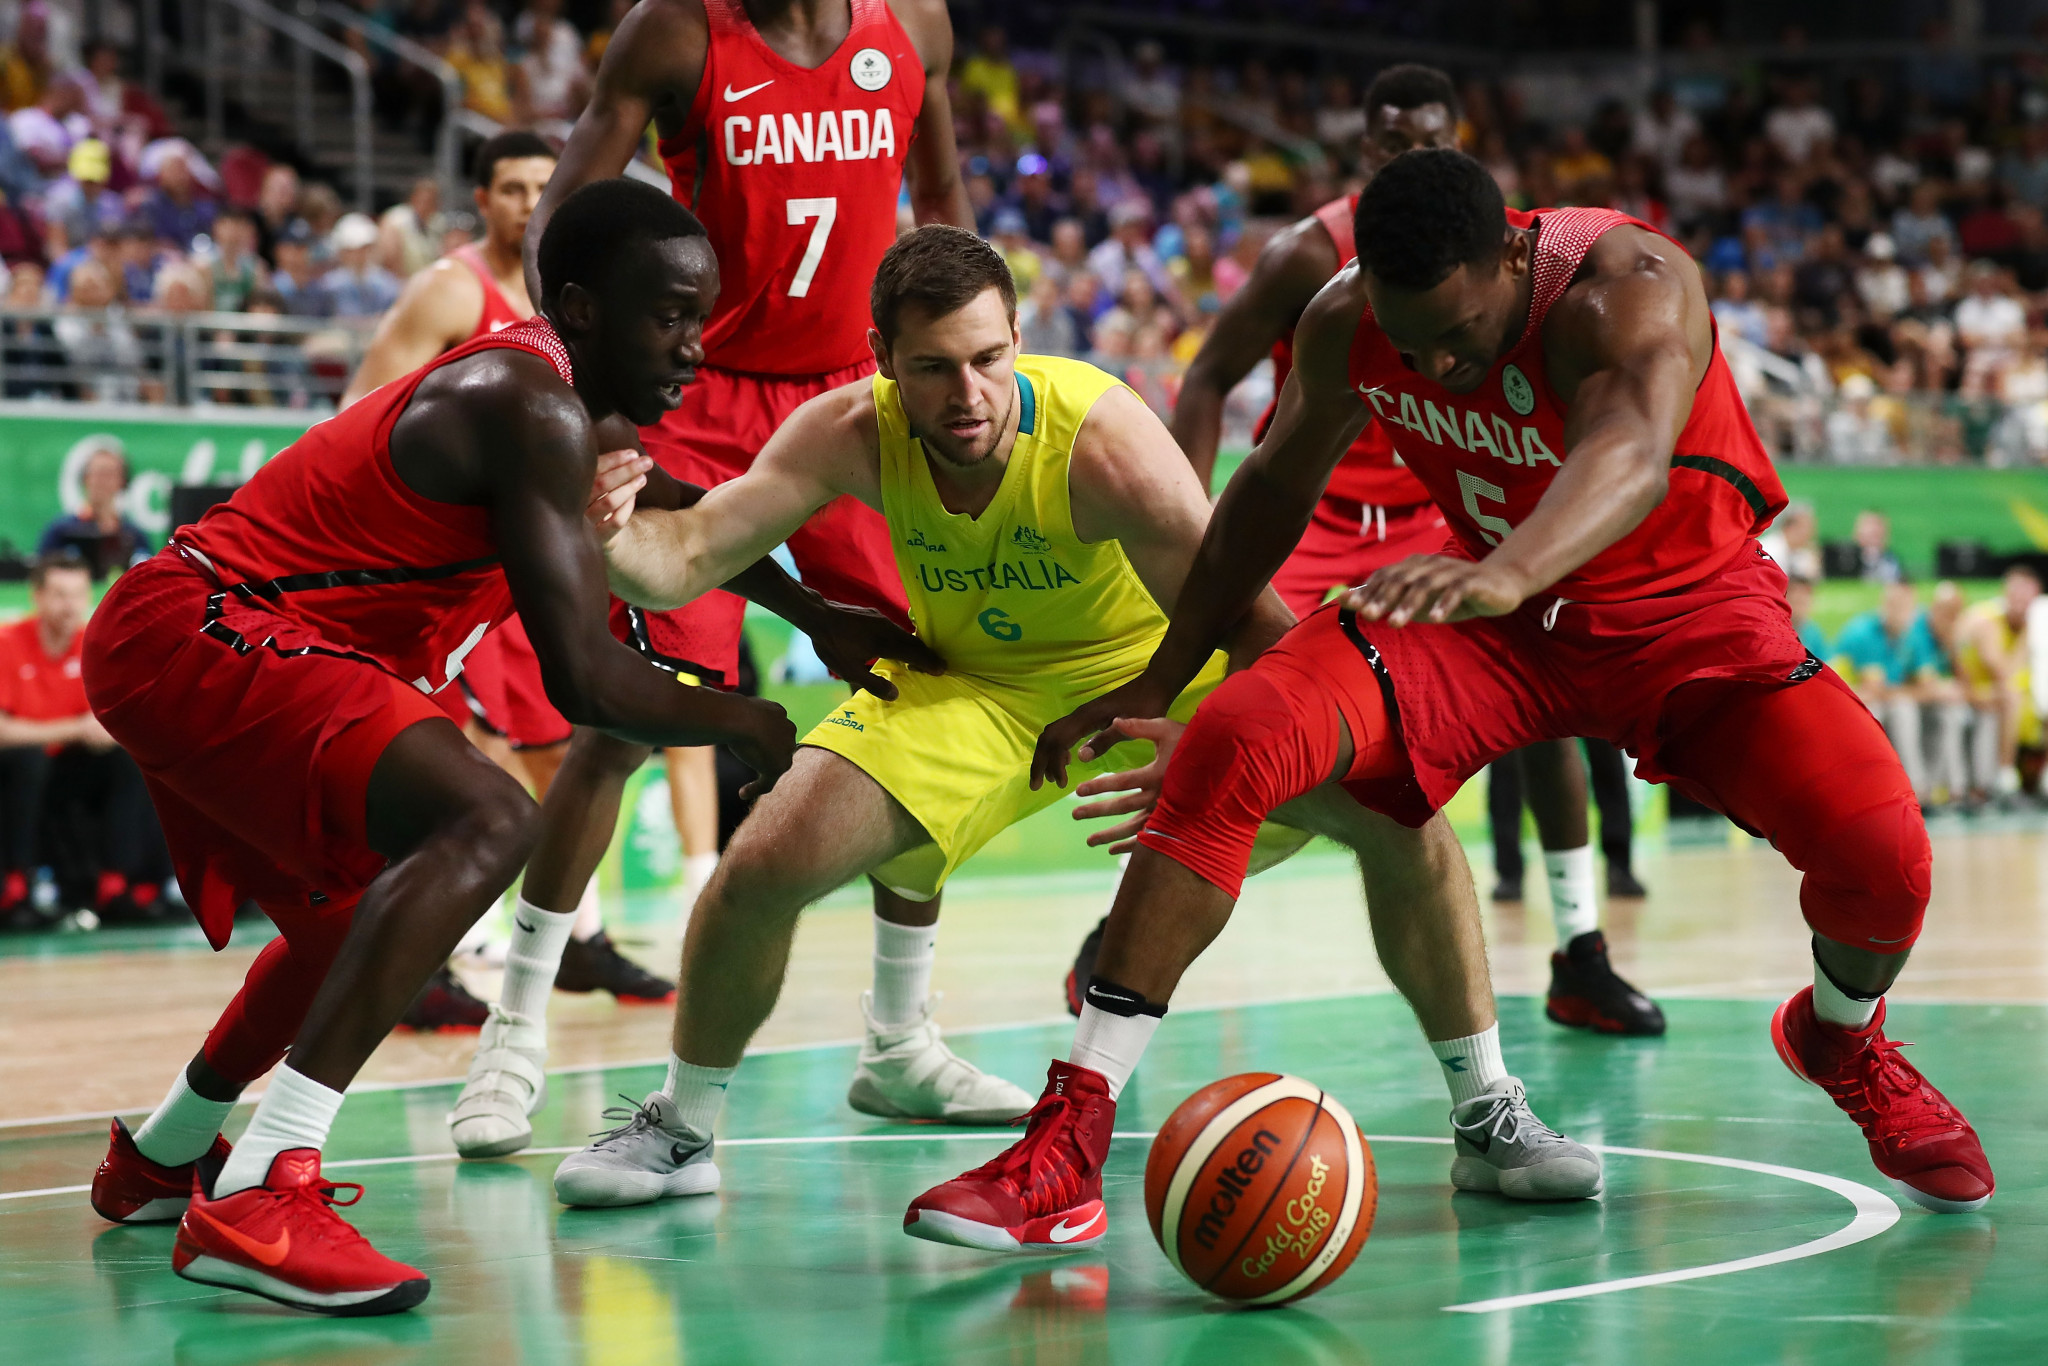 Canada will battle it out with China, Greece, Uruguay, Czech Republic and Turkey for a place at Tokyo 2020 ©Getty Images